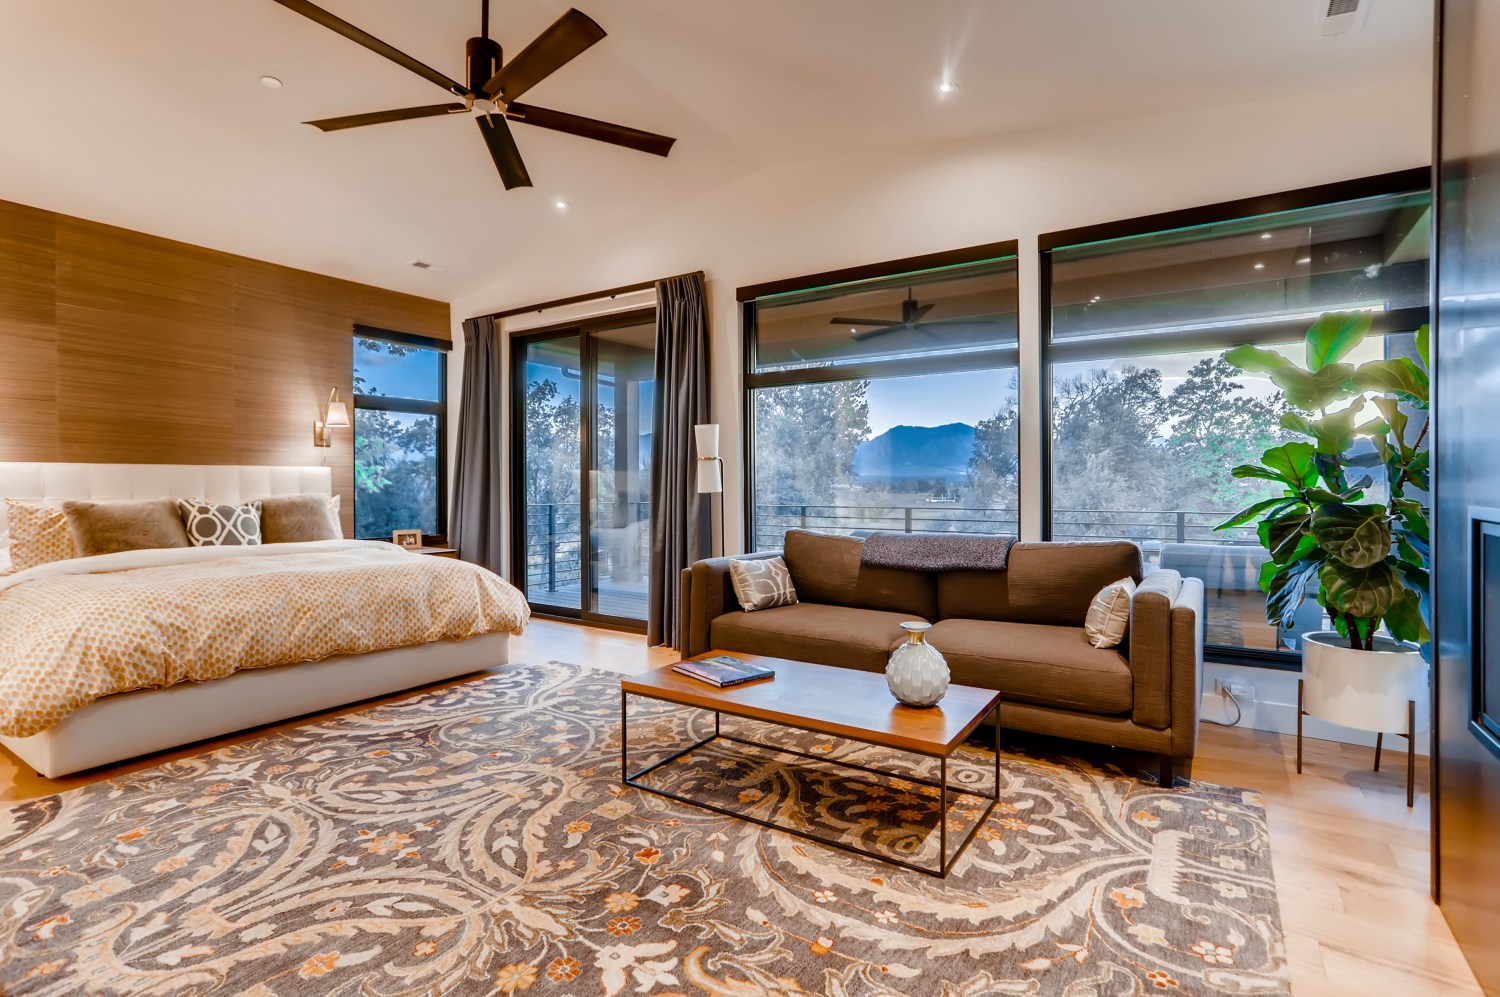 Master bedroom with large windows to Western views.